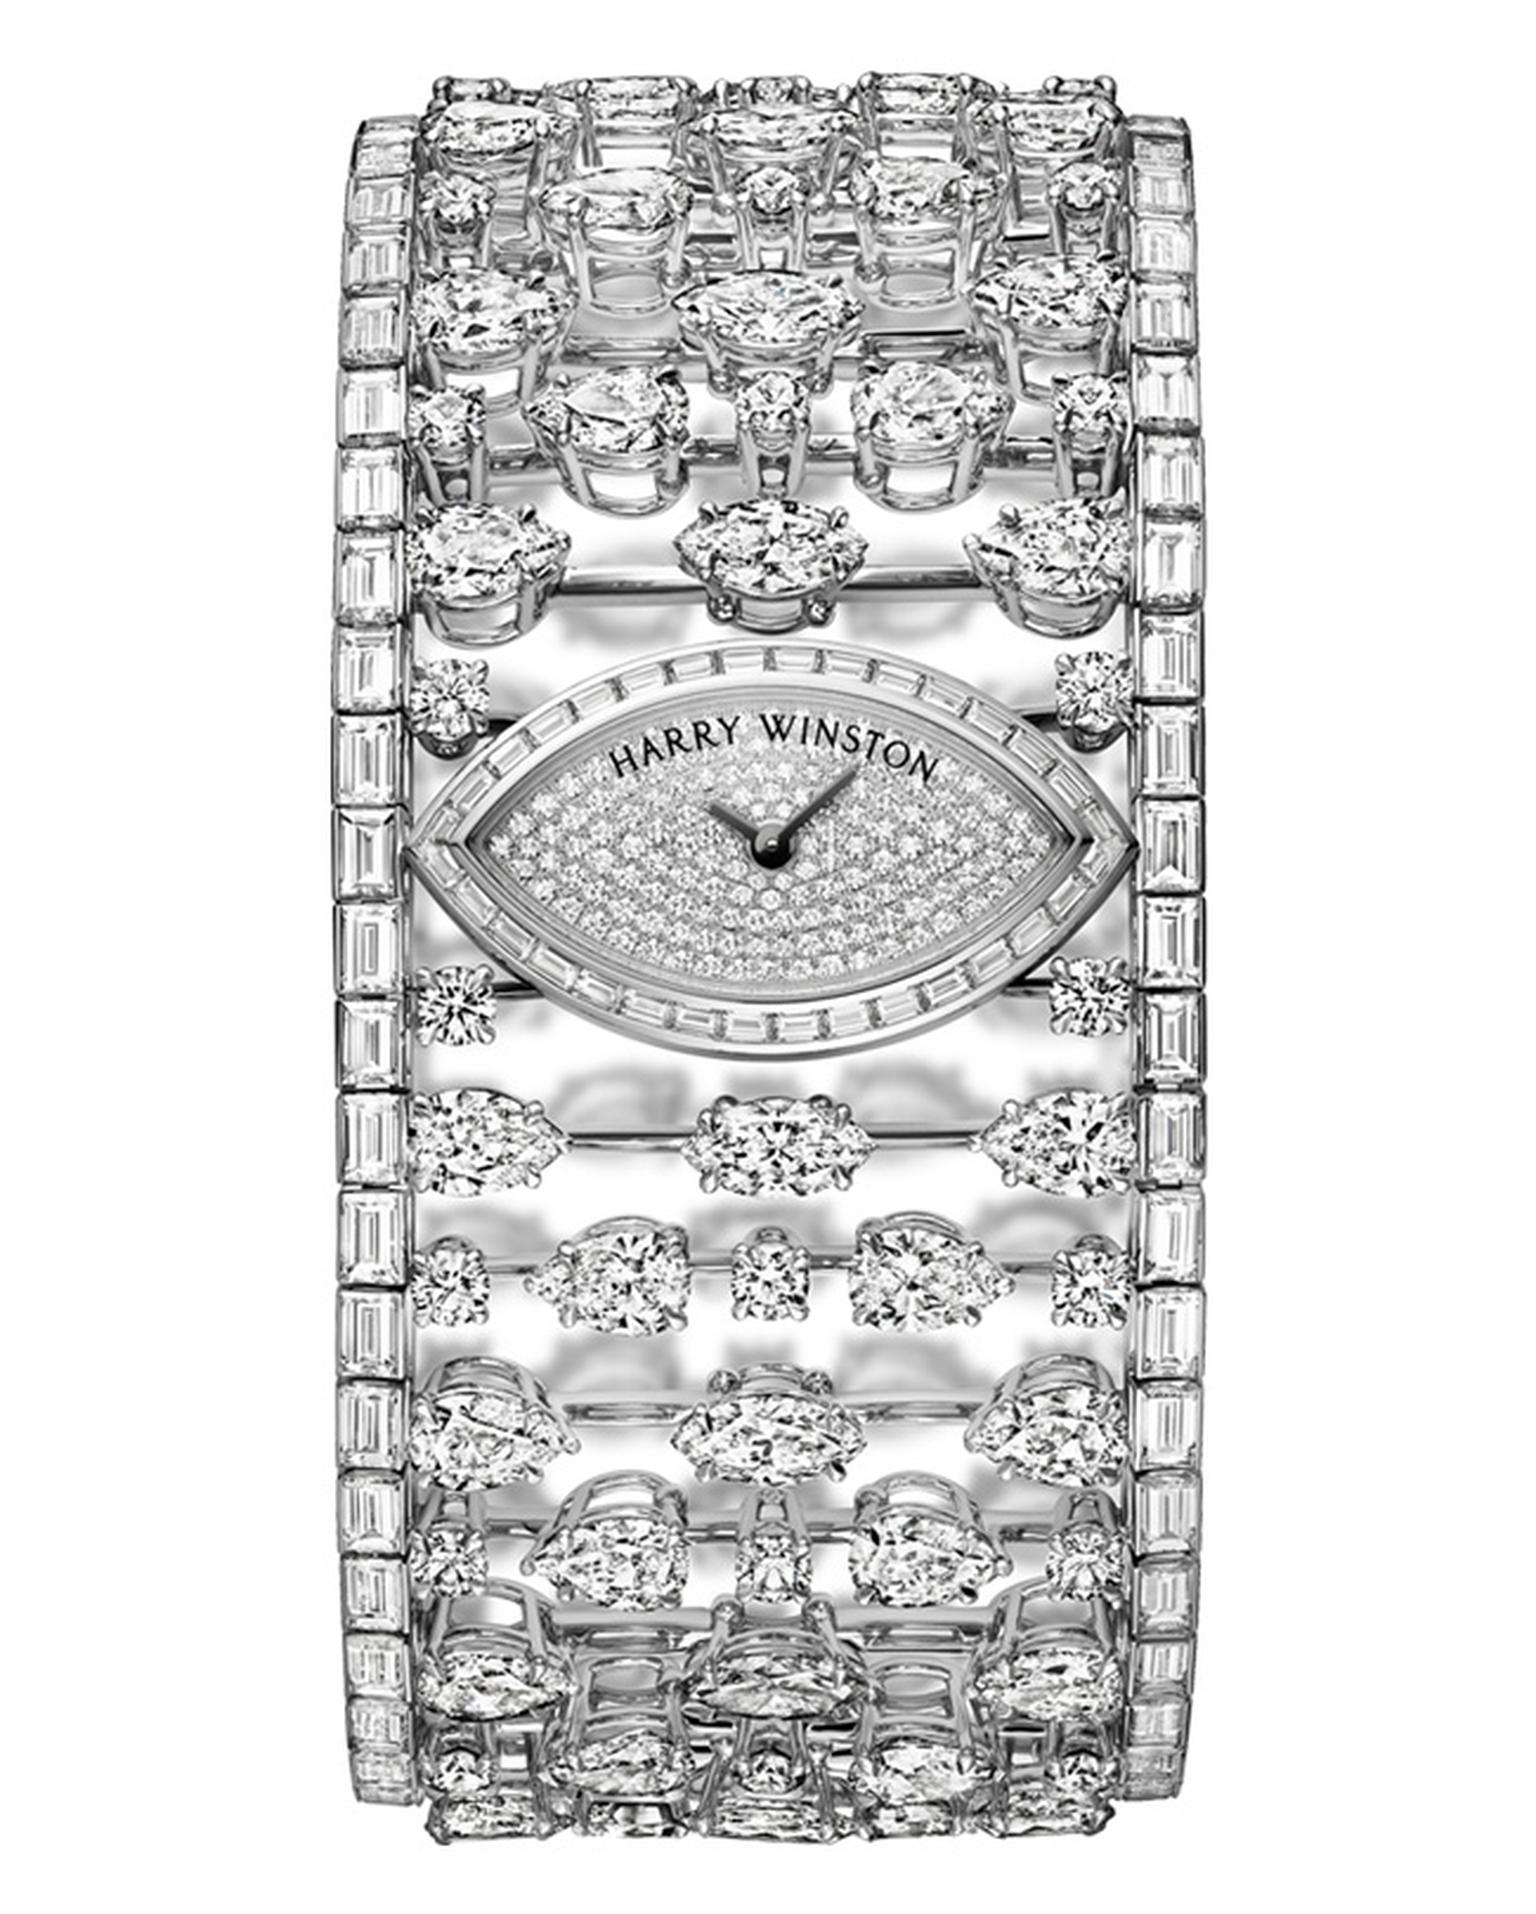 Harry Winston Mrs Winston high jewellery watch_20131115_Main